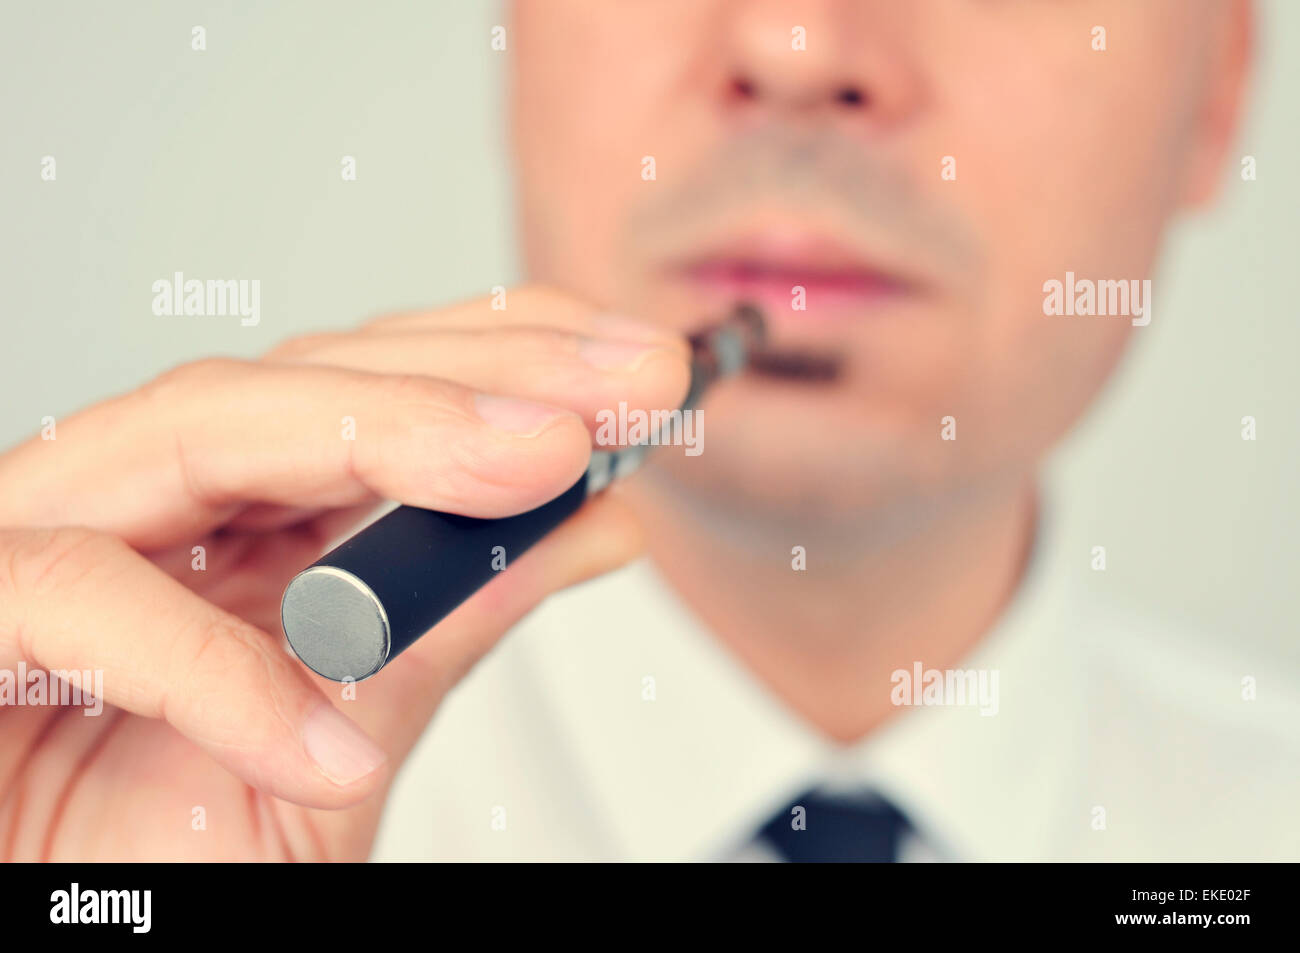 closeup of a young caucasian man wearing a white shirt and black tie vaping with an electronic cigarette - Stock Image